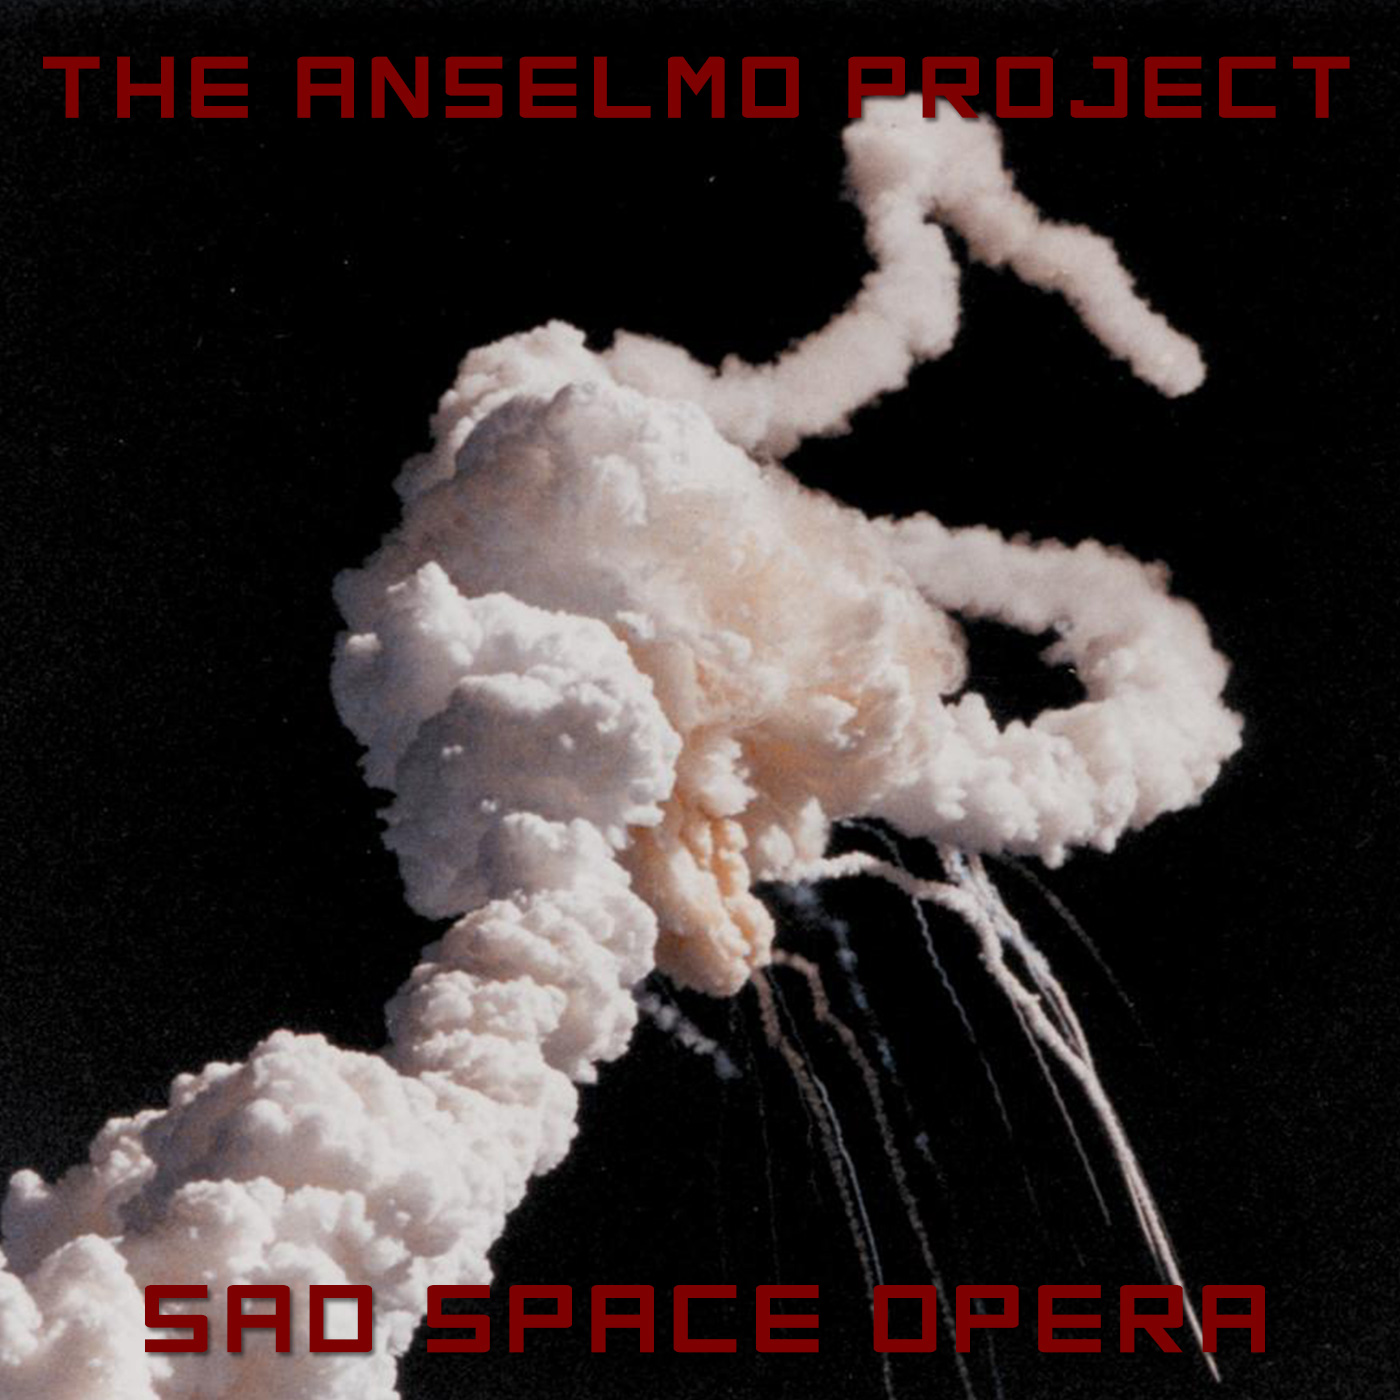 The Anselmo Project - Sad Space Opera